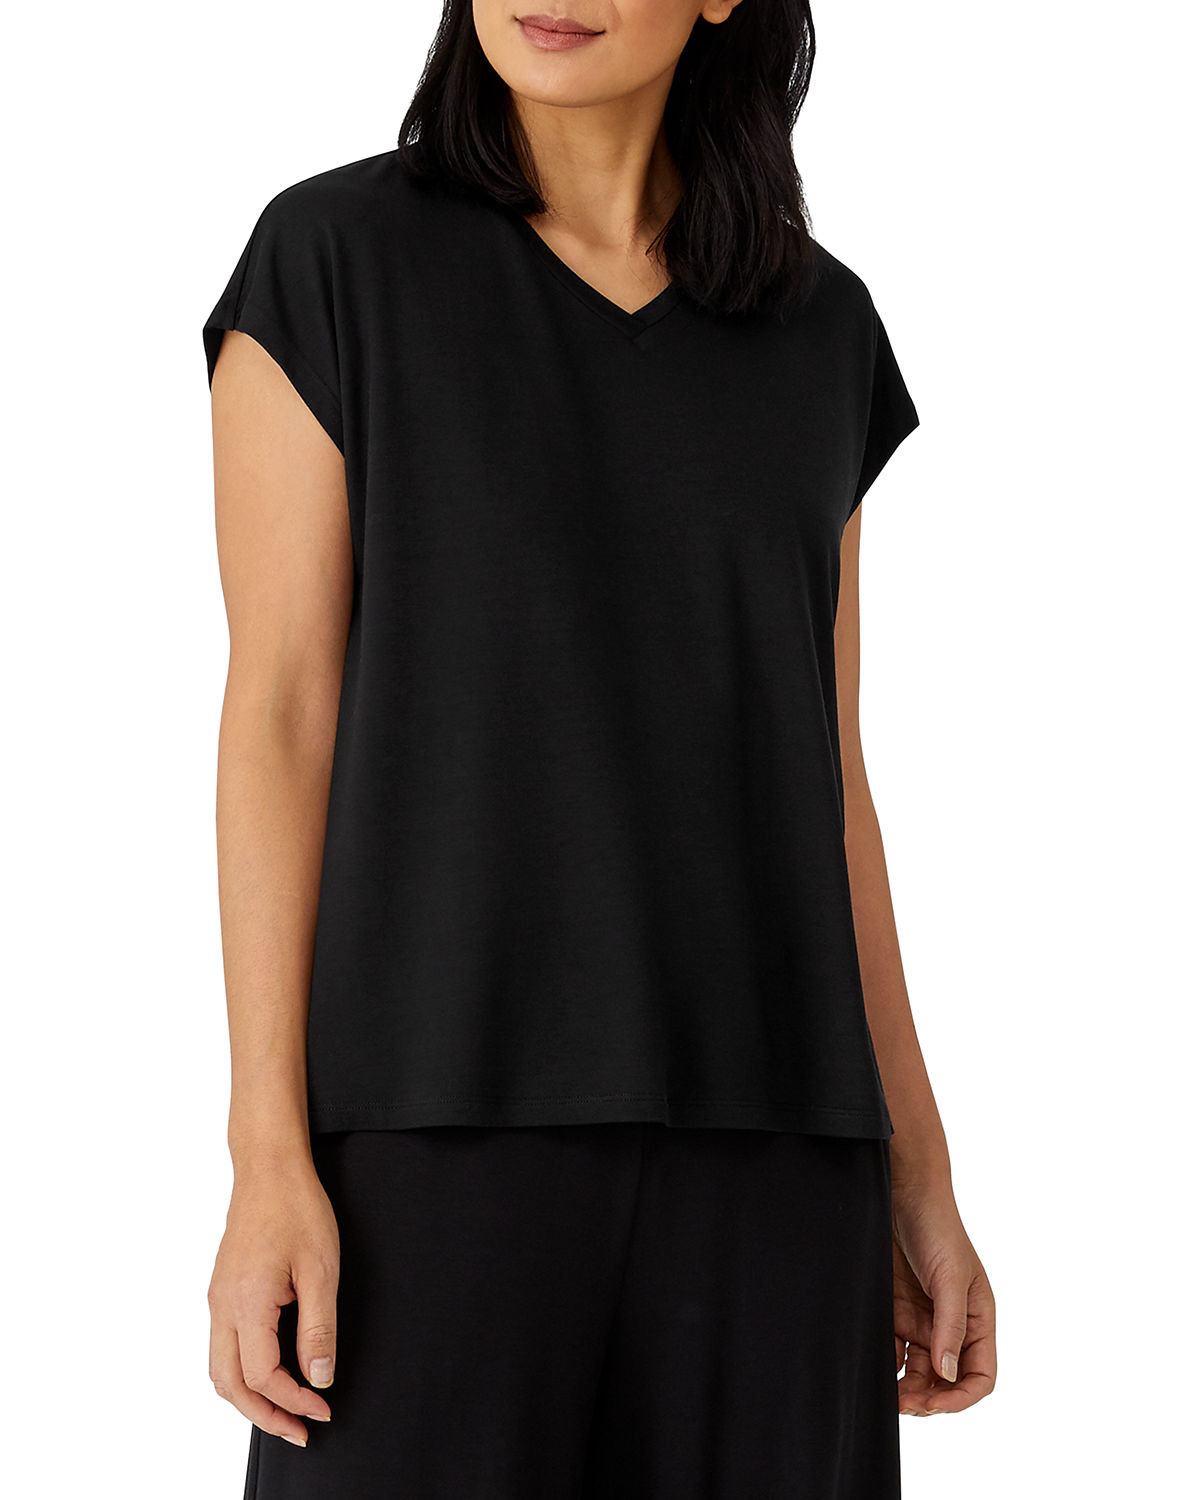 Eileen Fisher Tops FINE JERSEY V-NECK BOXY TOP